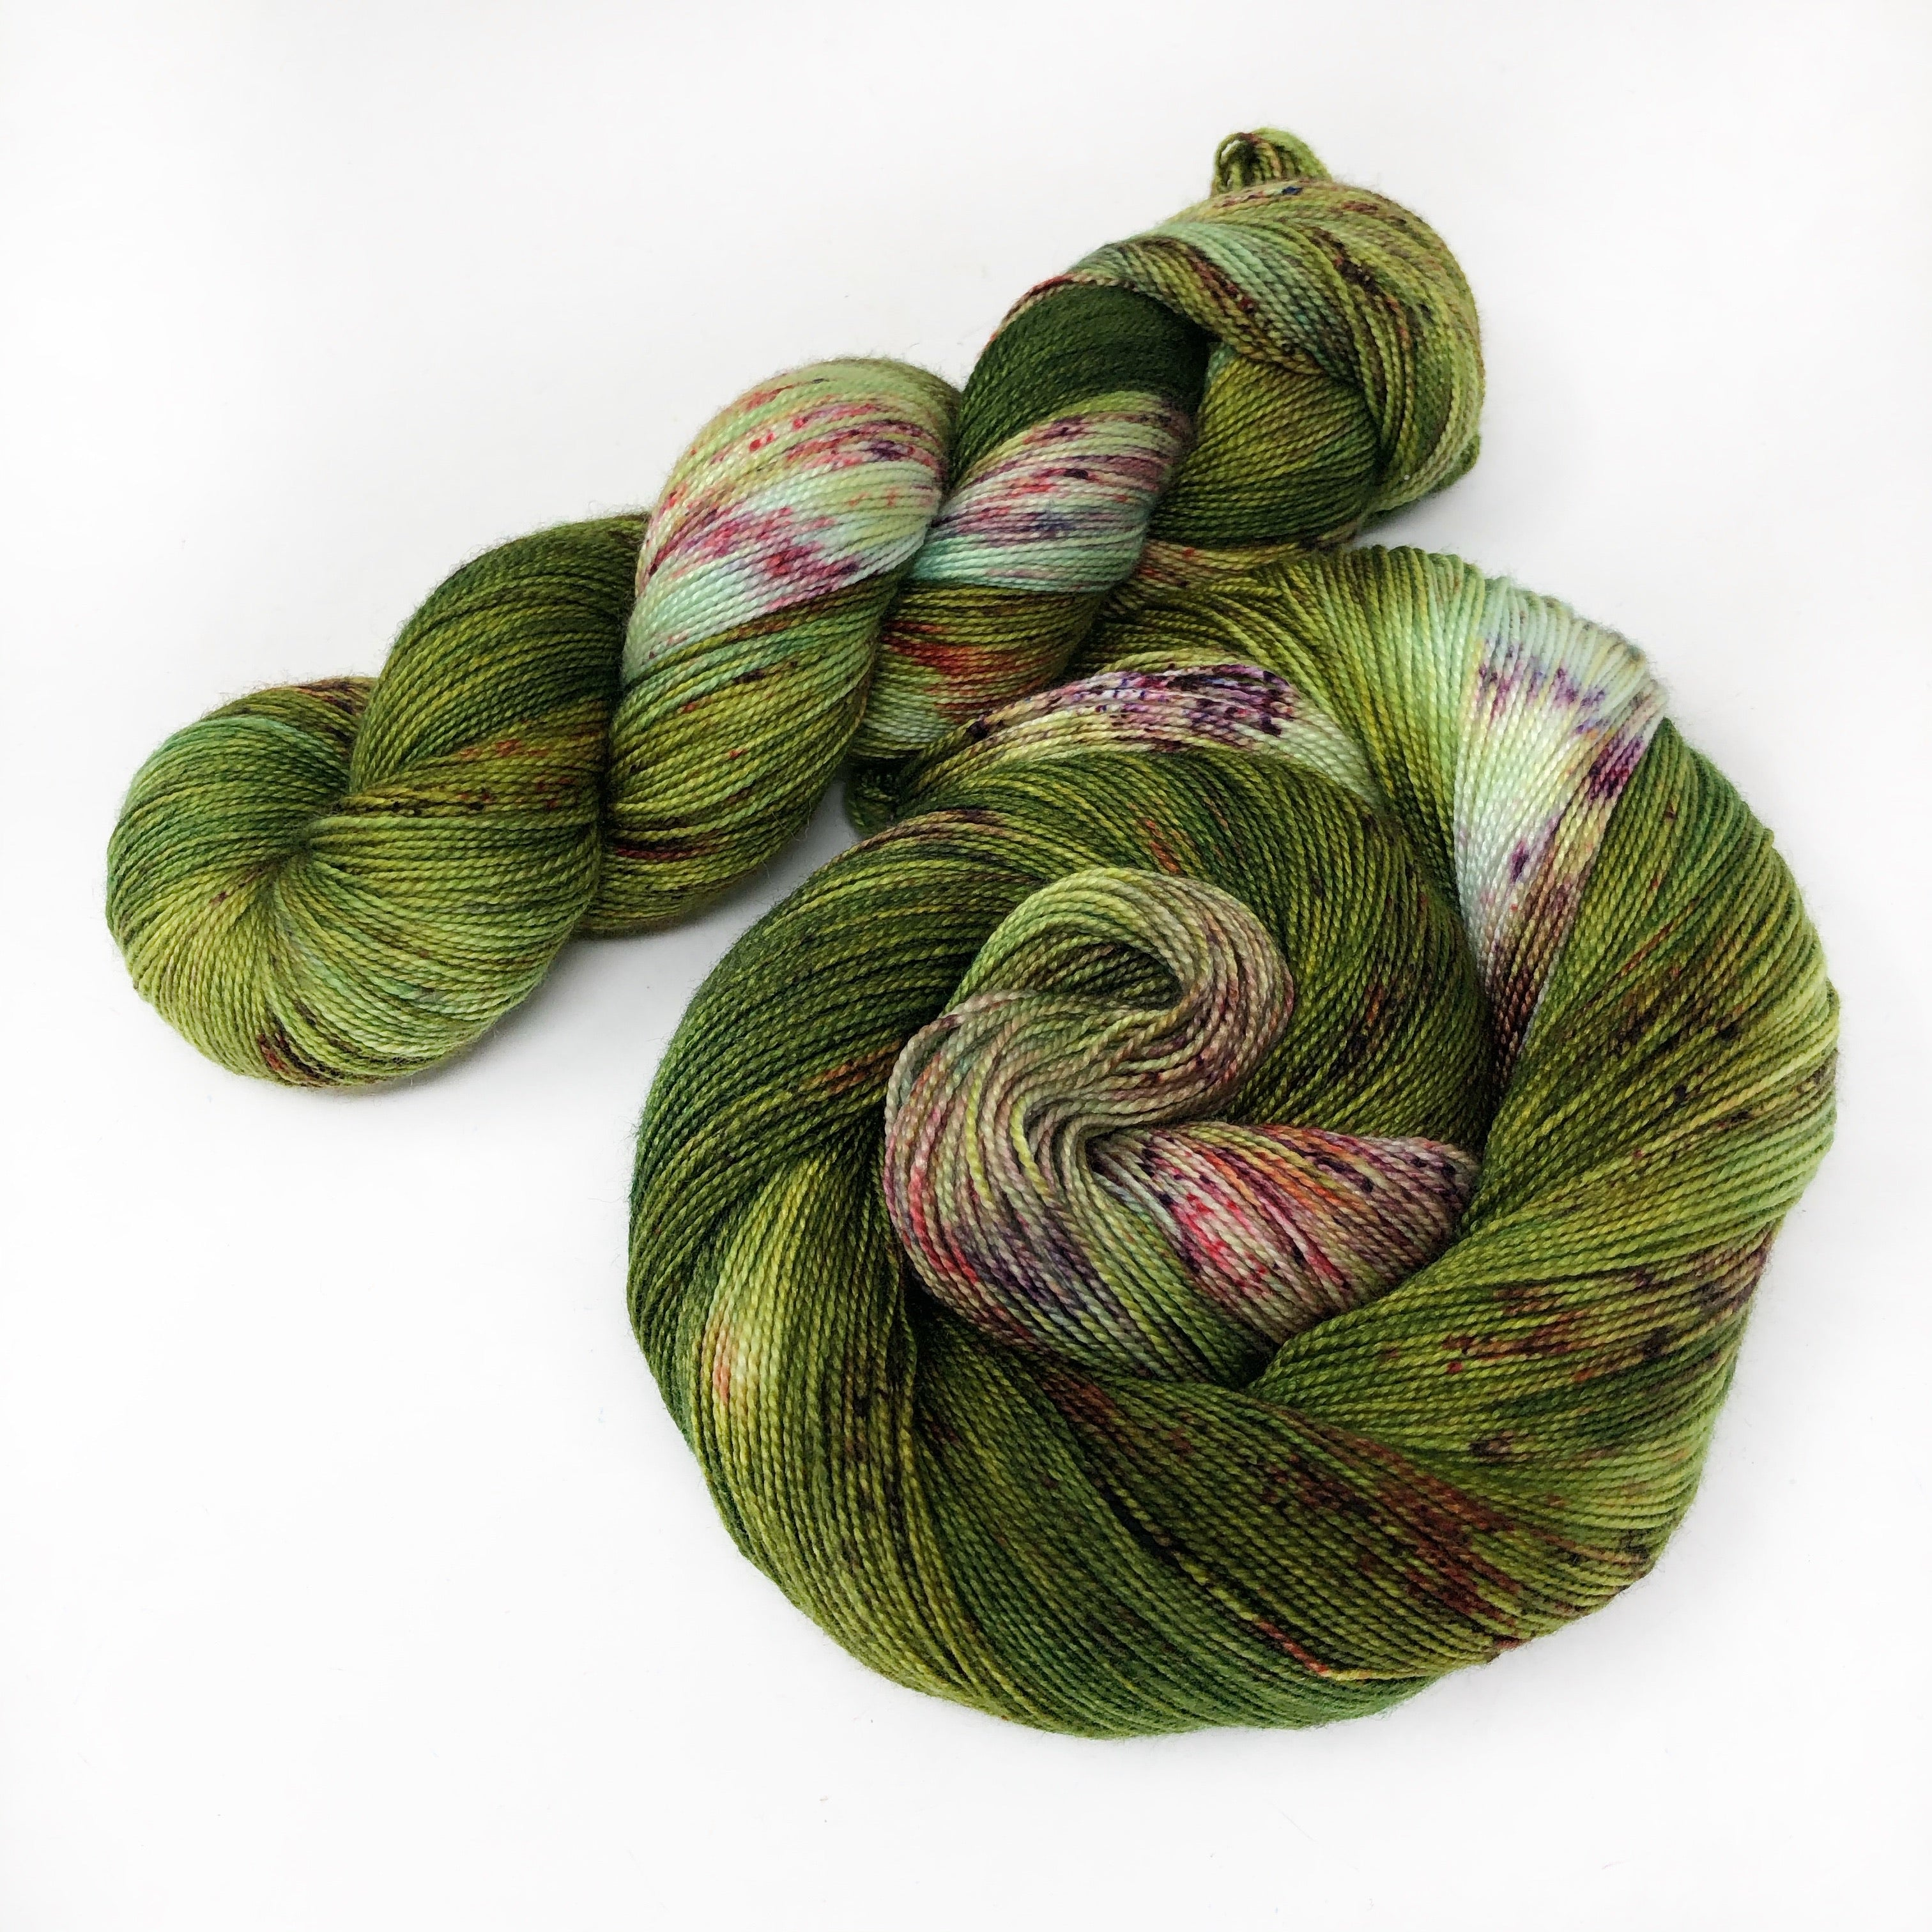 Raspberry Canes - Shawl length skein - 600 yards